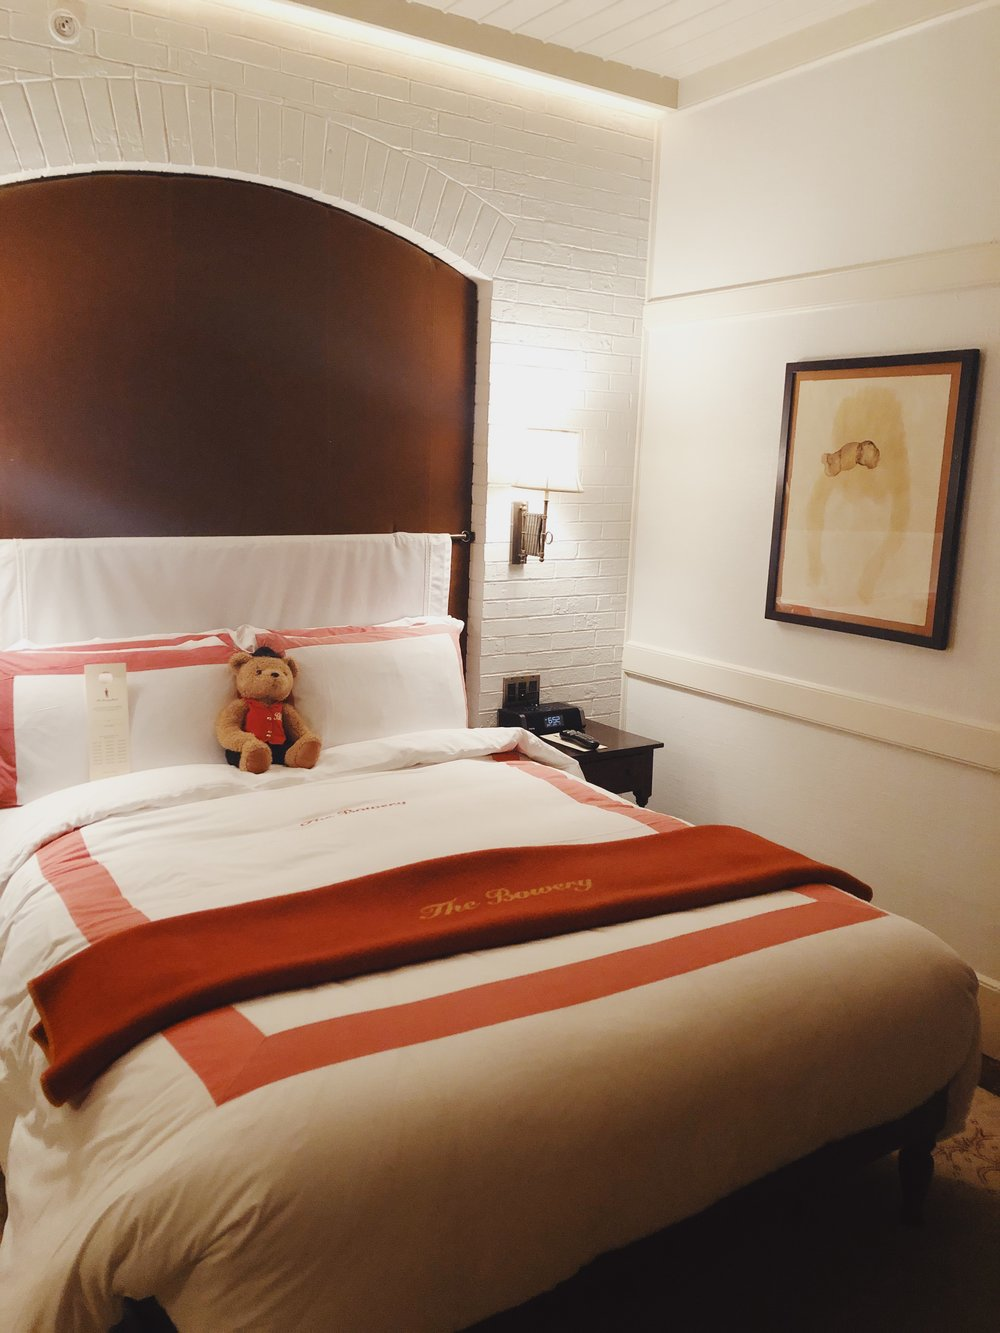 the bowery hotel bed with bear